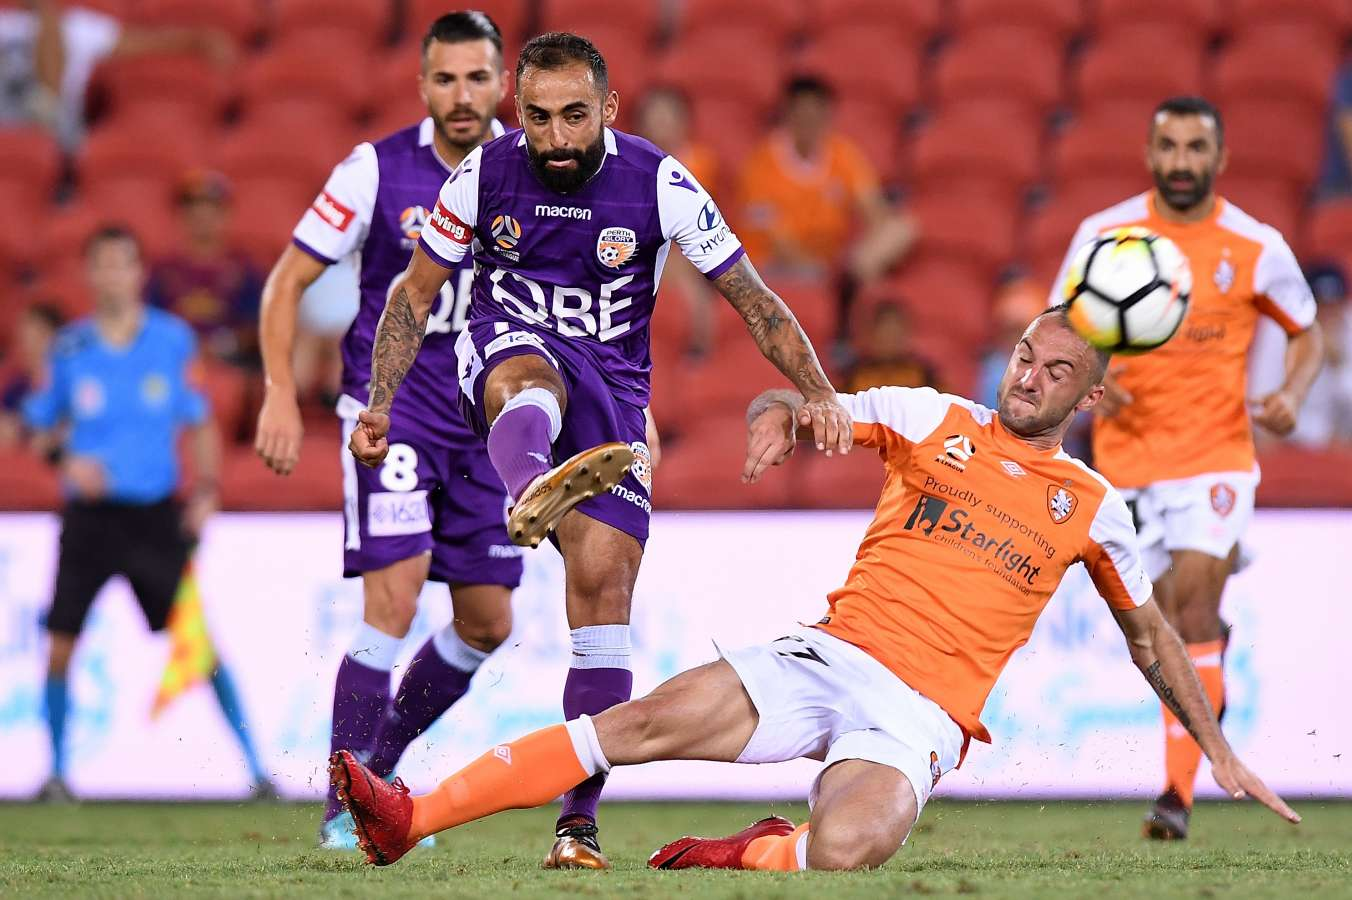 A-League Betting Preview: Round 27 - All at stake for Roar and Glory